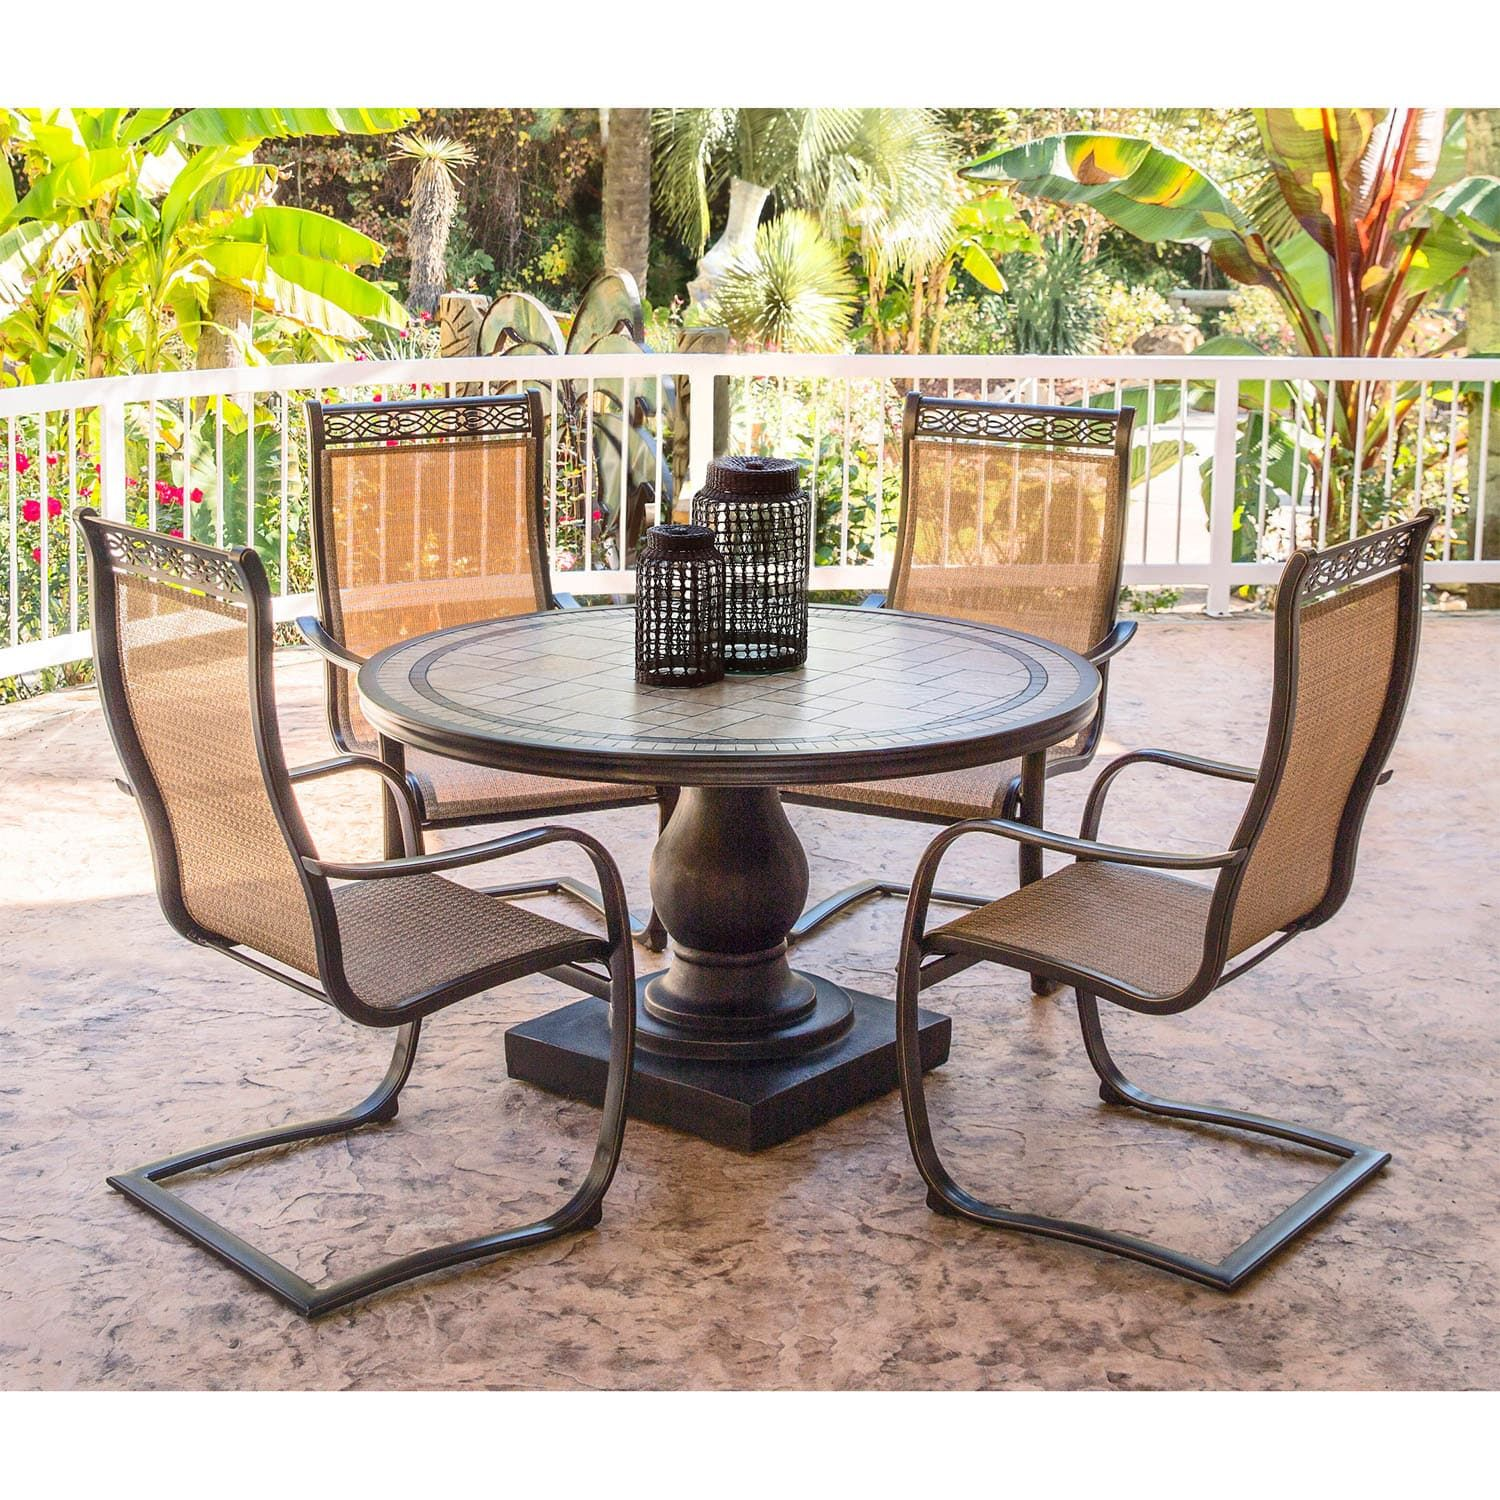 Hanover Monaco Golden Bronze Aluminum 5 Piece Outdoor Dining Set With  C Spring Chairs And Tile Top Dining Table (Tan), Size 5 Piece Sets, Patio  Furniture